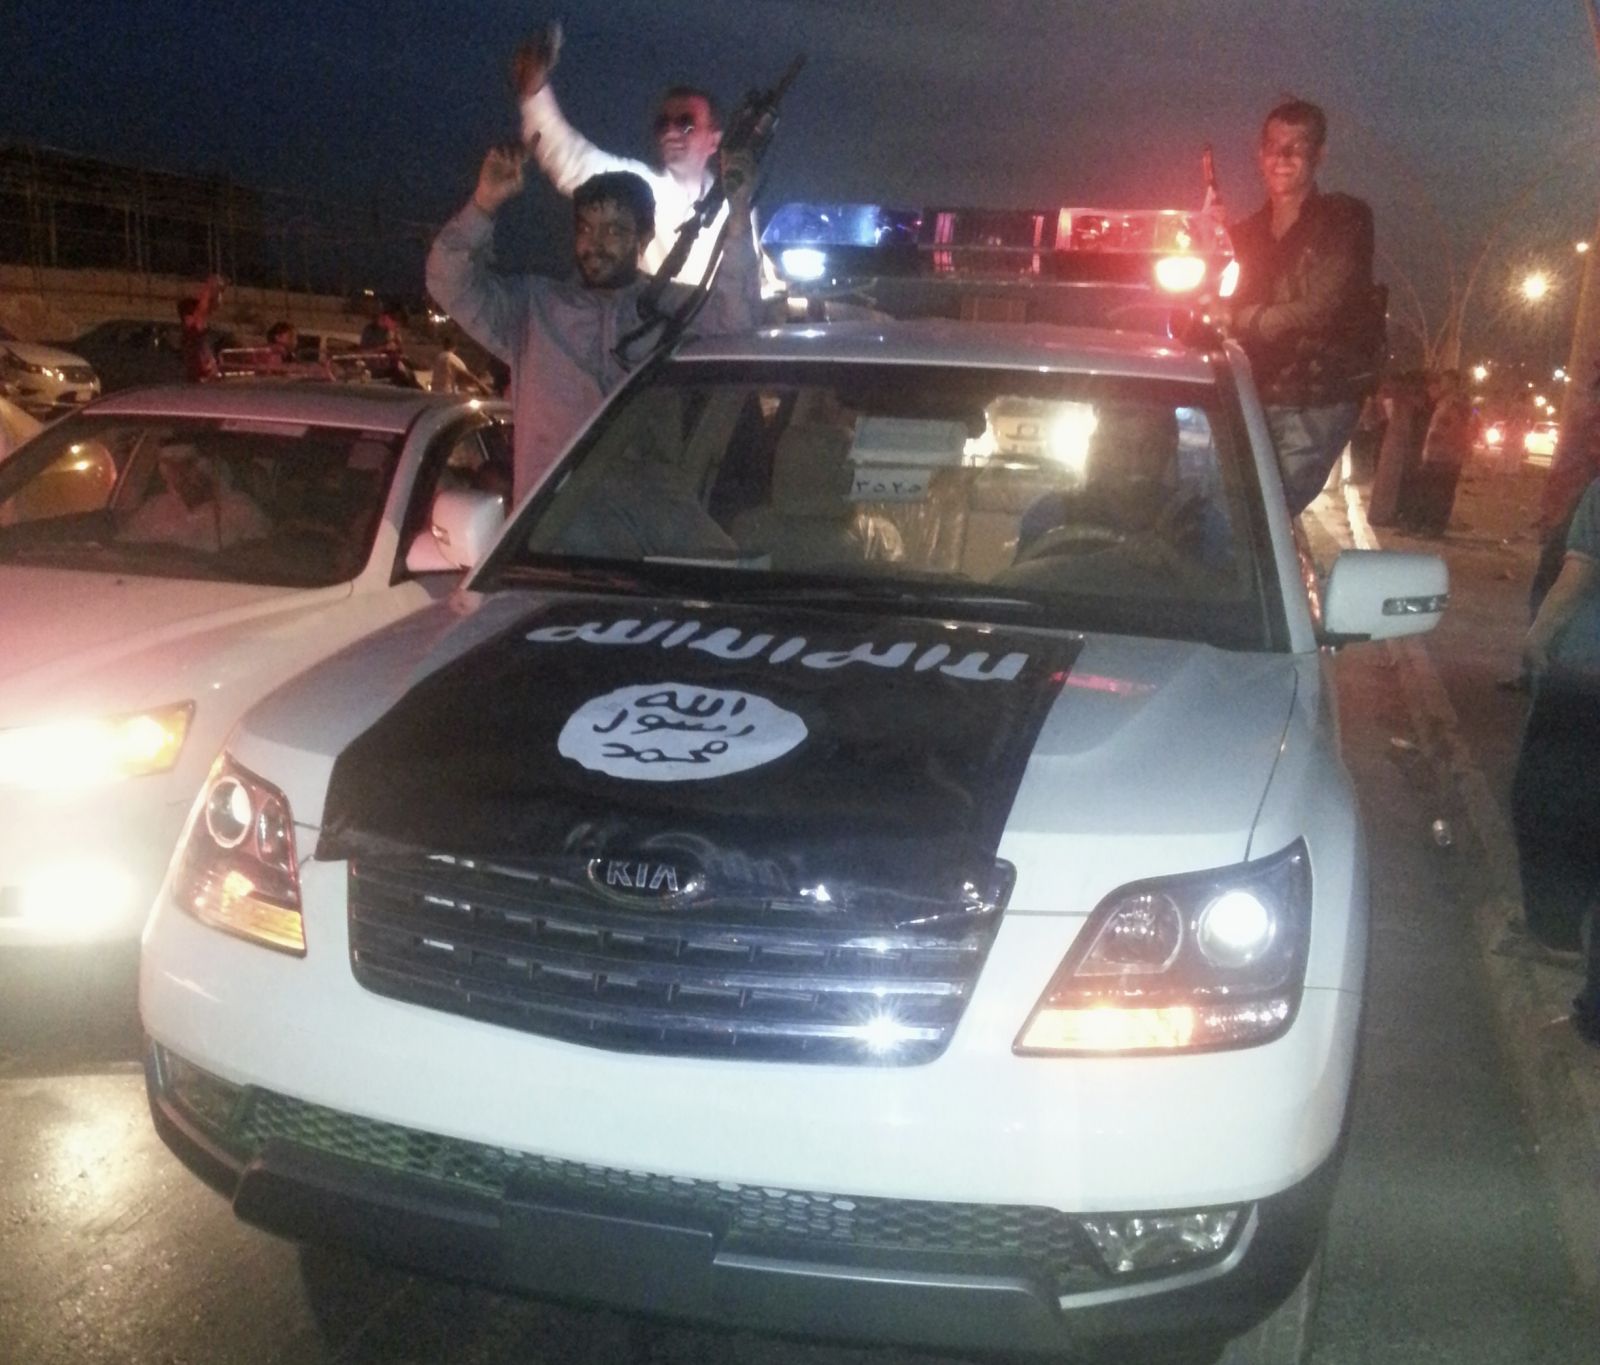 Isis militants in a commandeered police vehicle in Mosul, Iraq (Reuters)